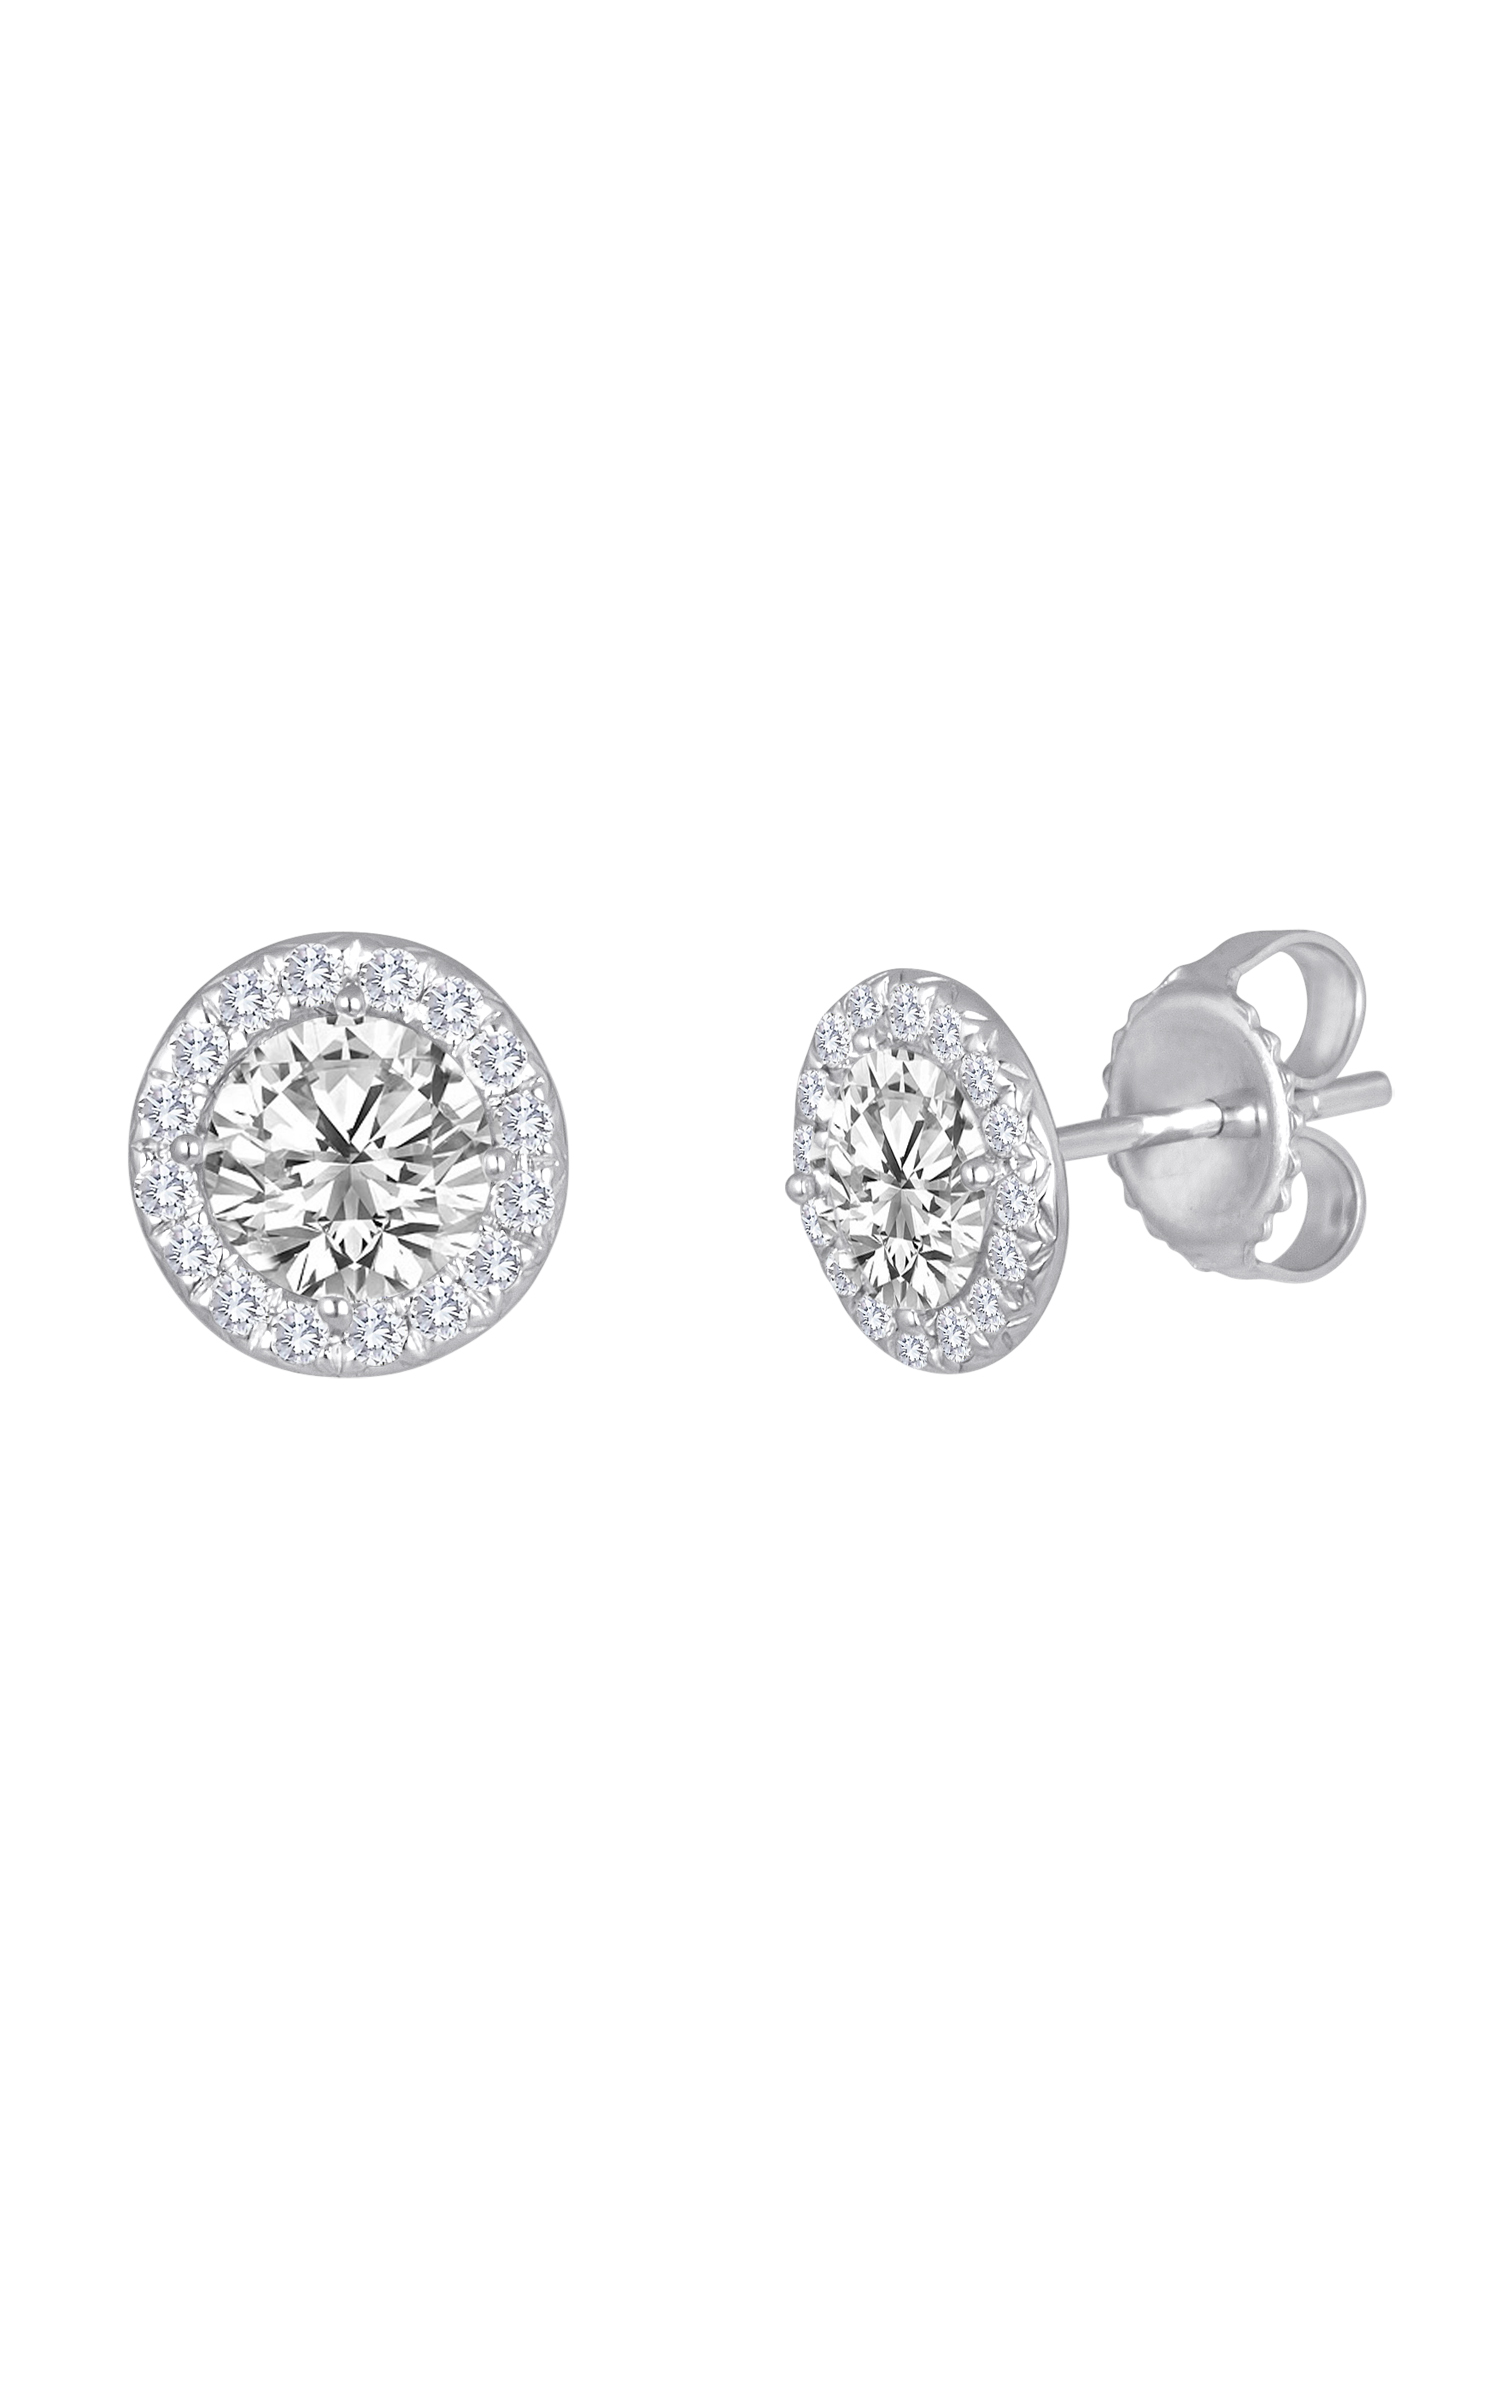 Beny Sofer Earrings Earring SE12-146-8B product image